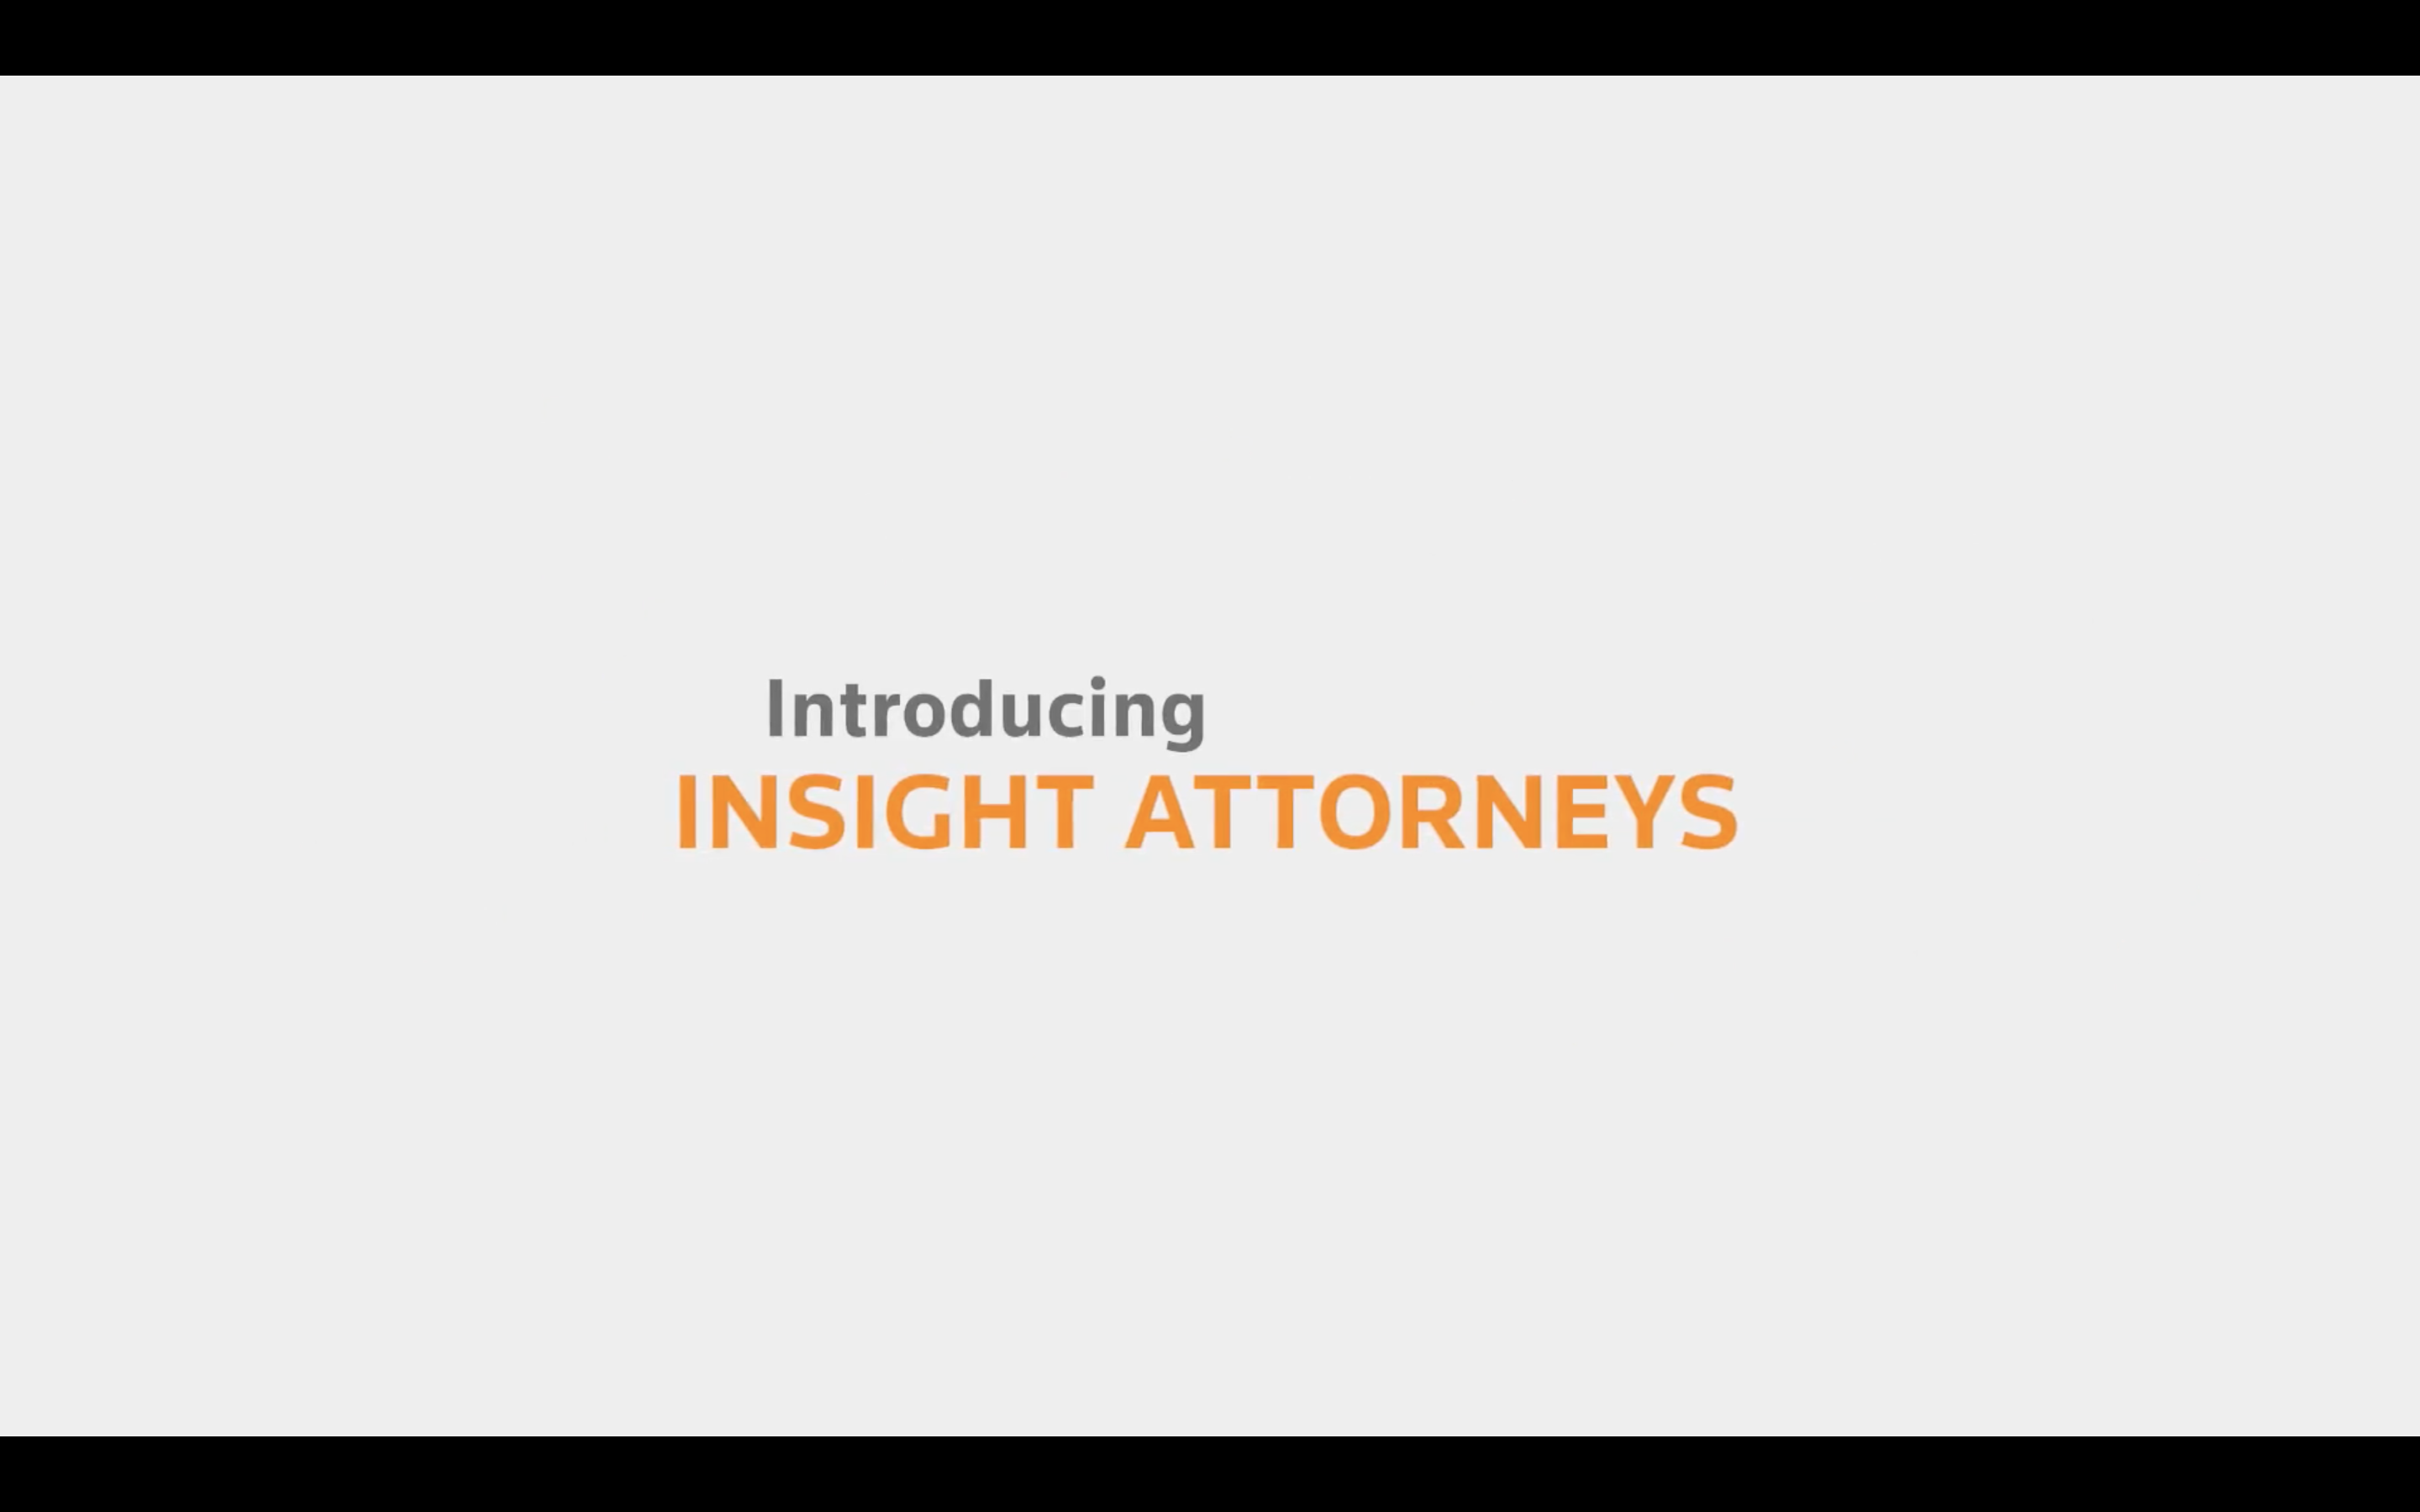 Introducing Insight Attorneys